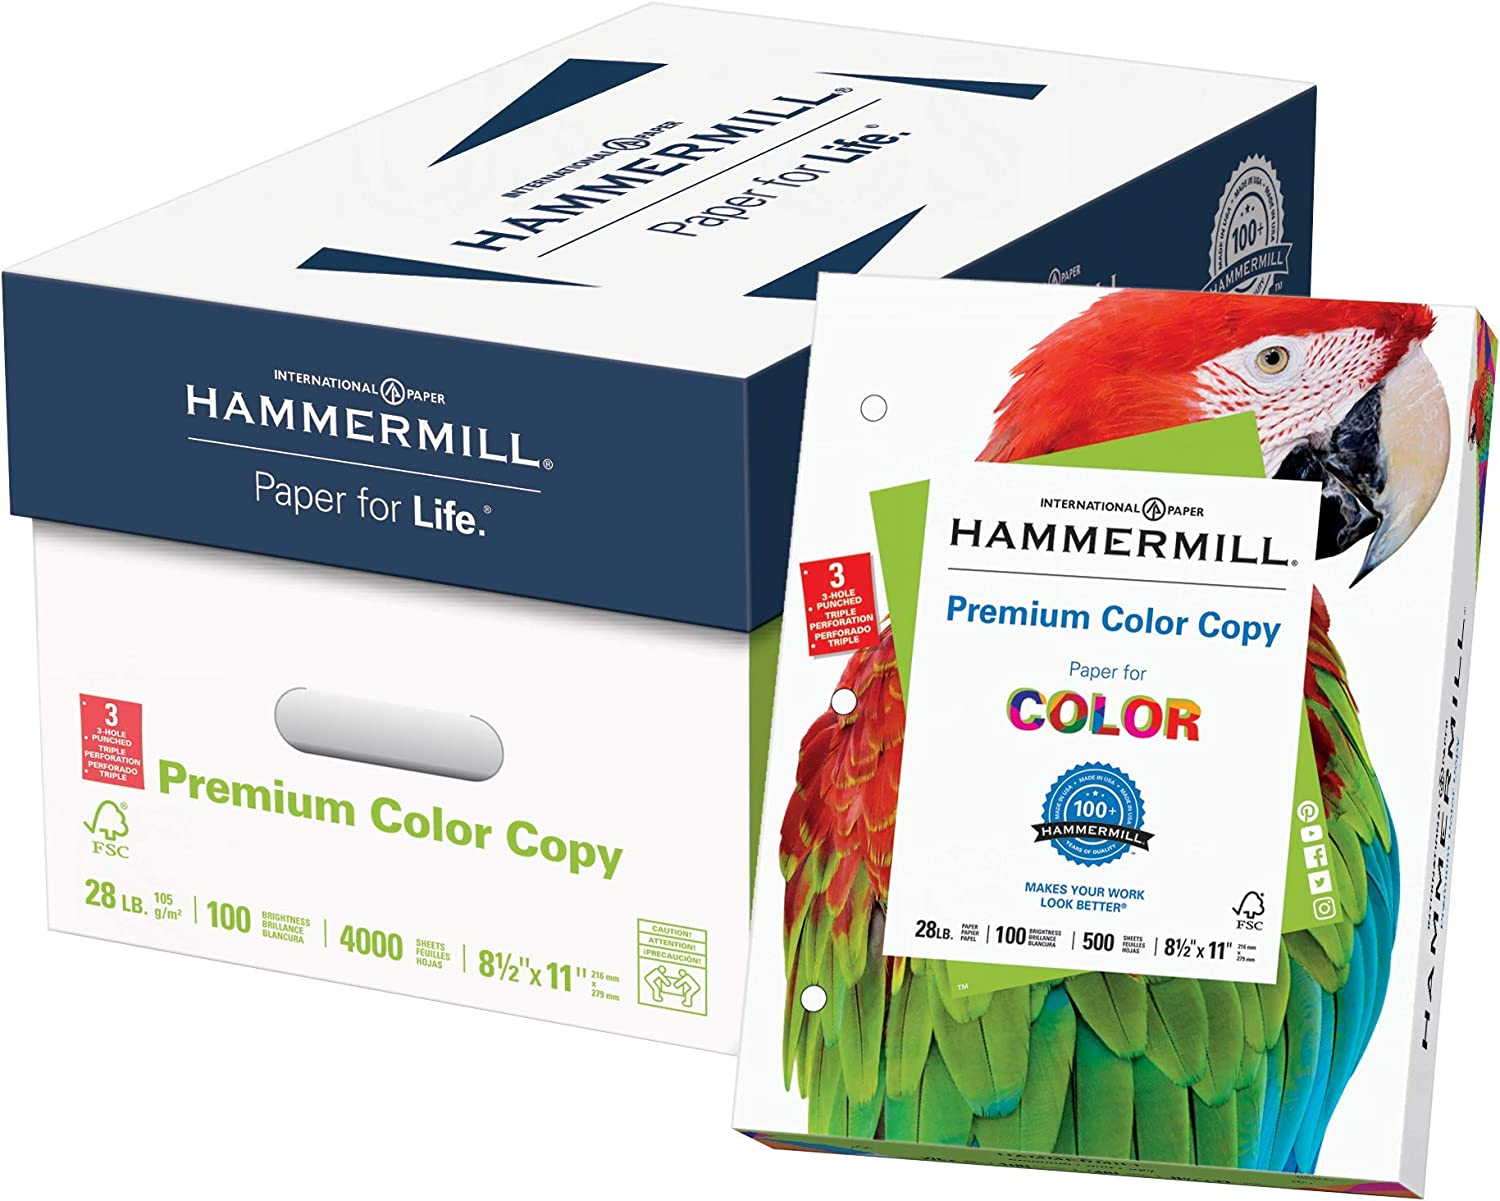 Hammermill Premium Color Copy 28 lb Paper 8.5 x 11 3 Hole Punch 8 Ream Case 4,000 Sheets Made in USA 100 Bright, Acid Free 102500C